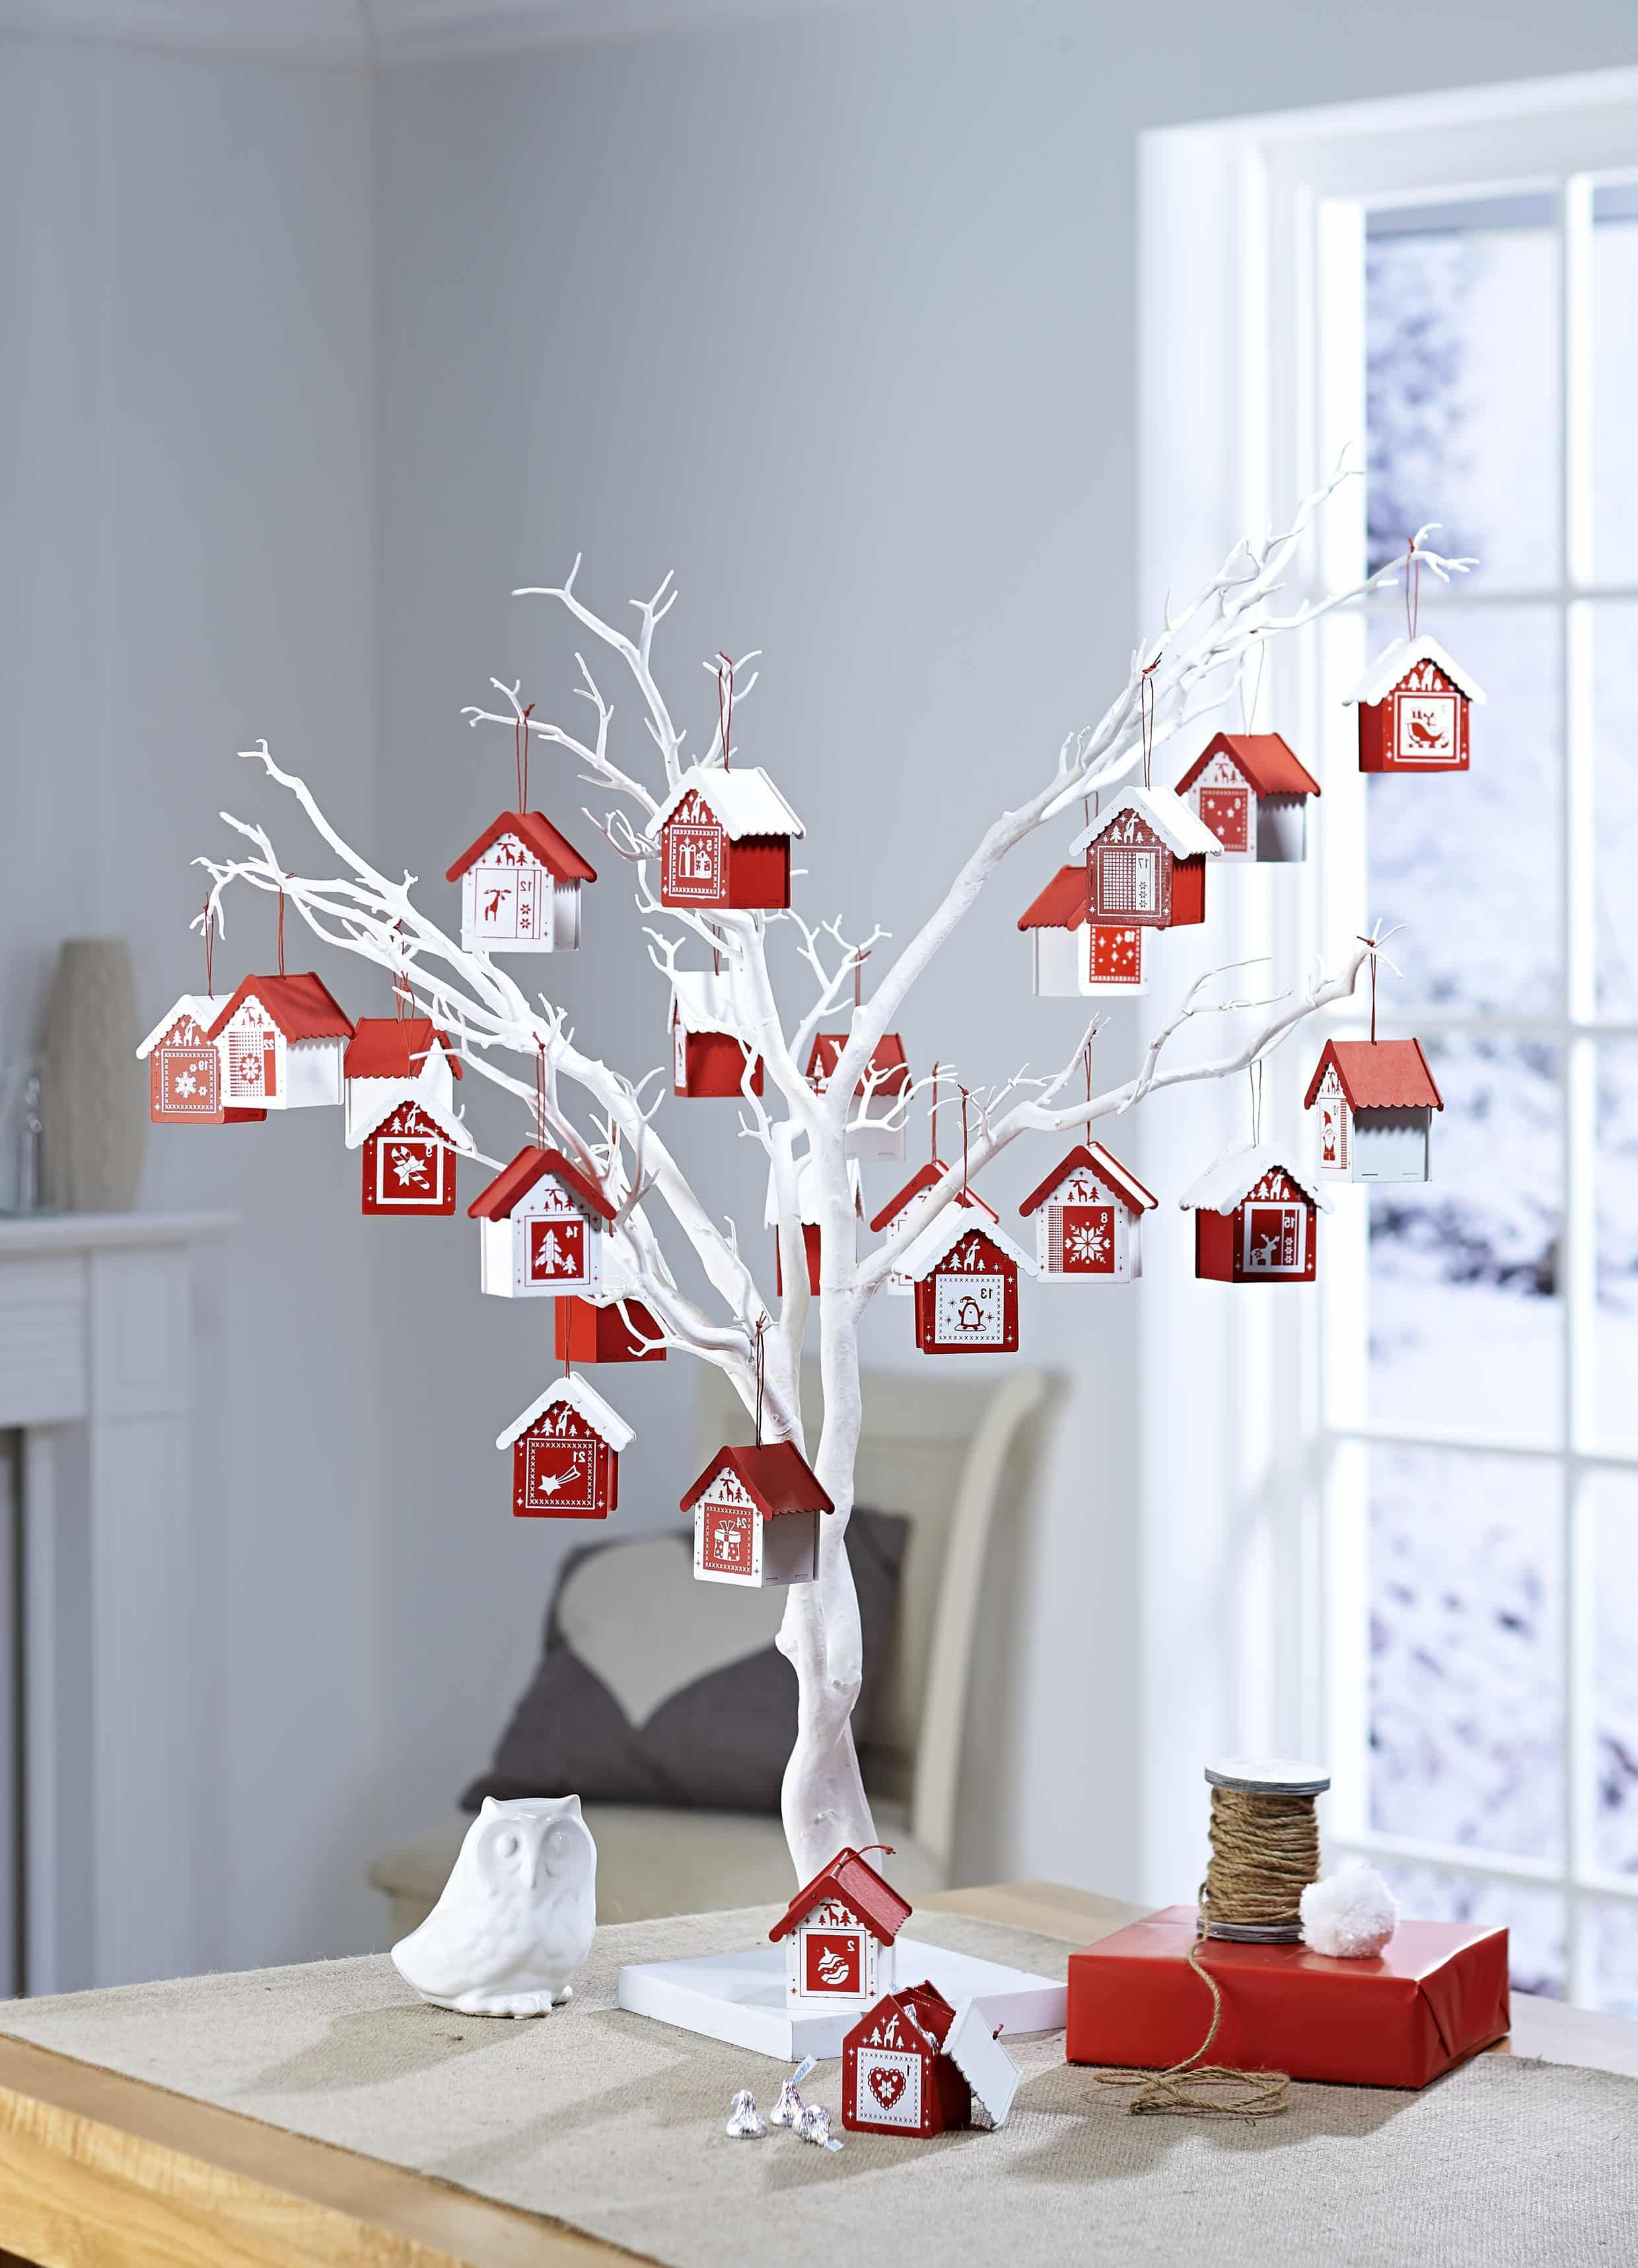 New Year's decor from branches is one of the most popular options for decorating rooms for the New Year